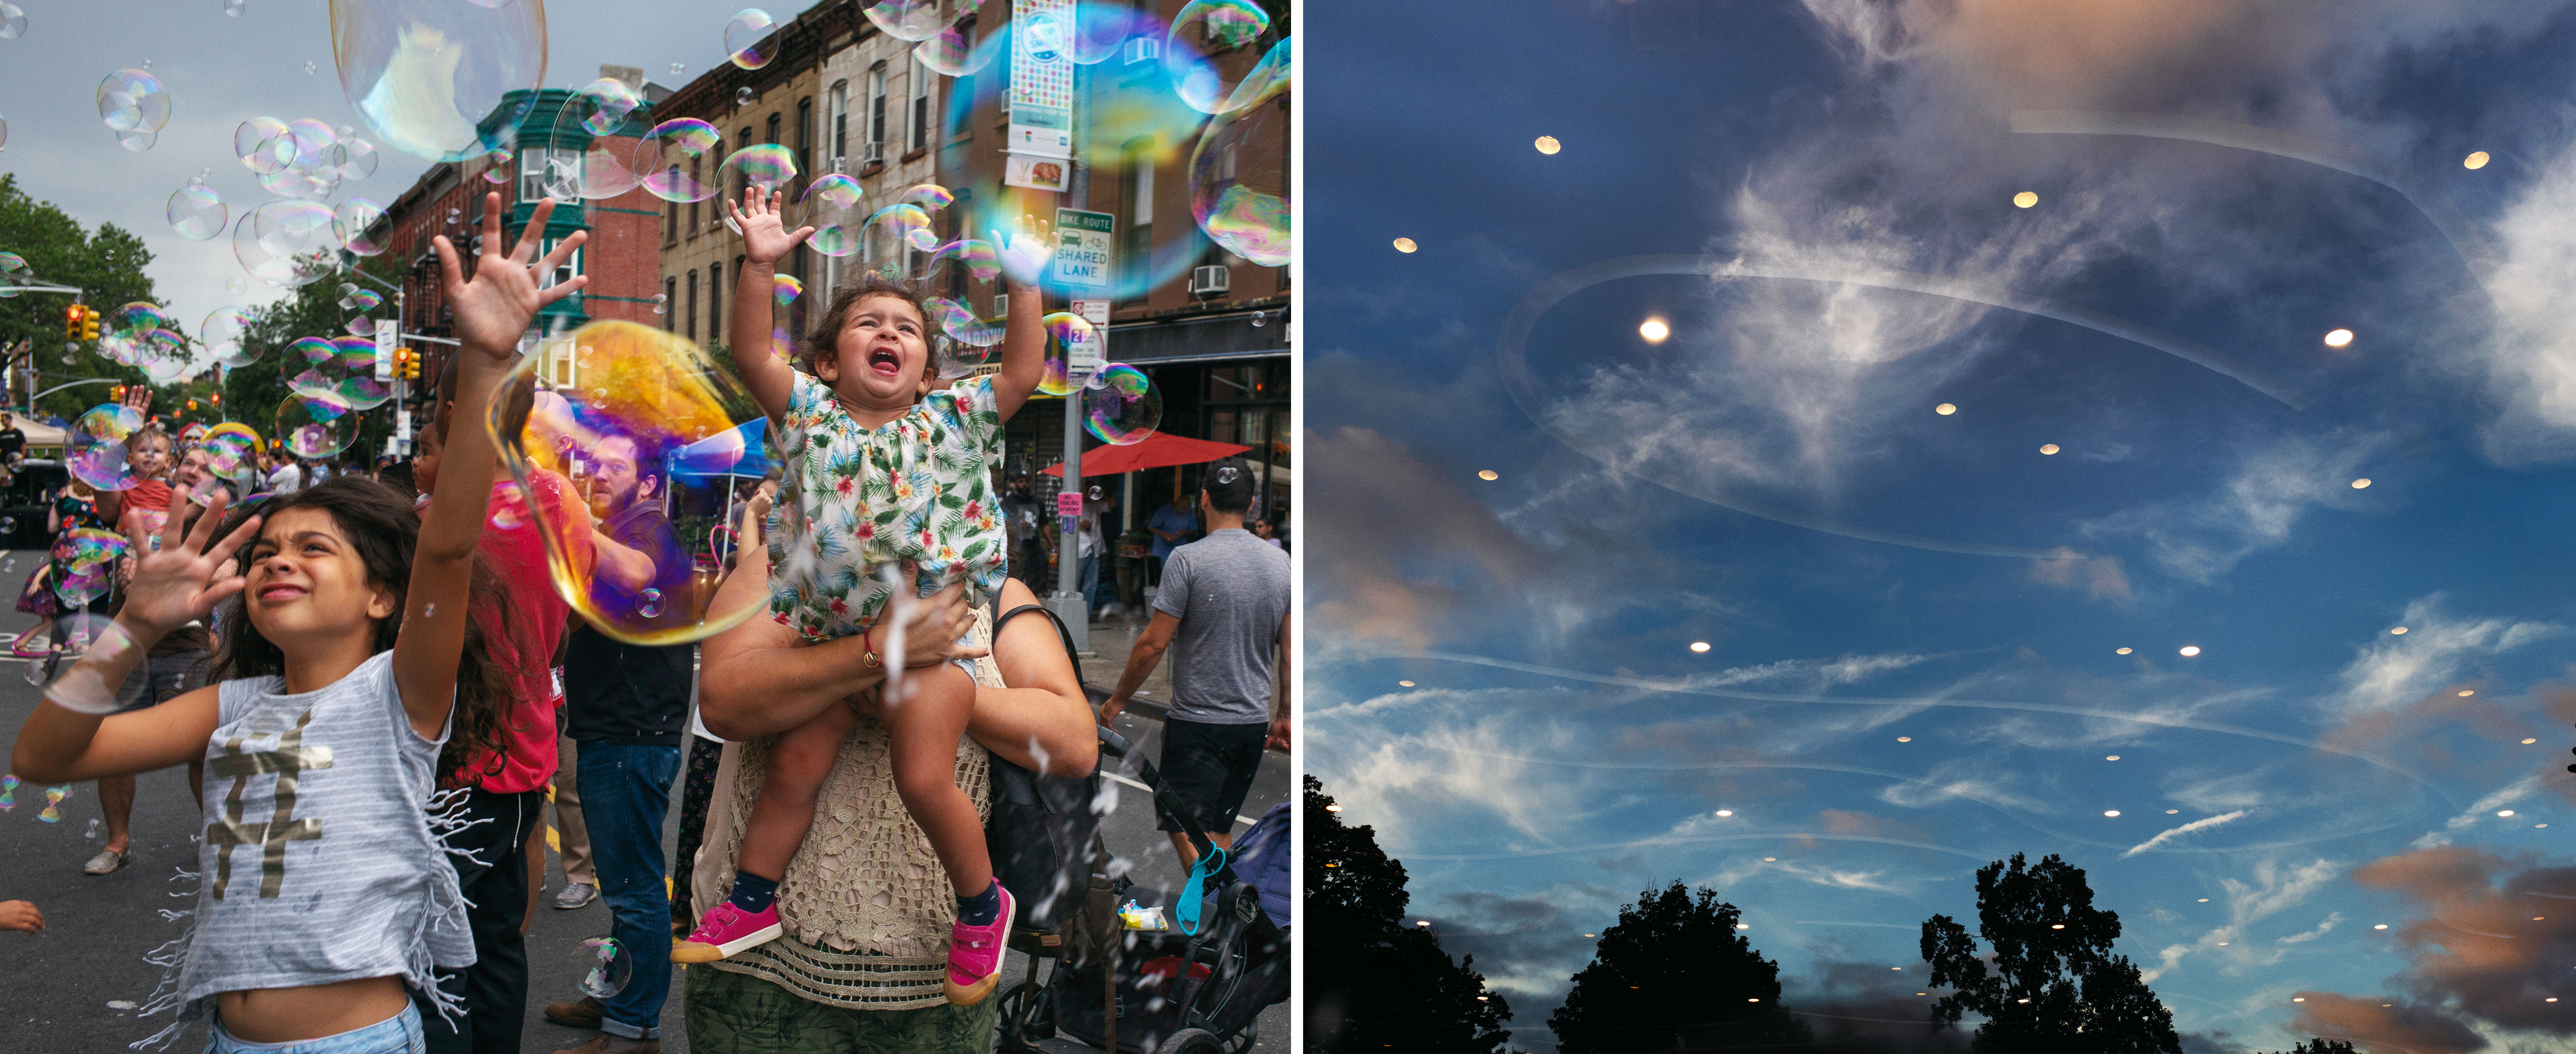 On left, members of the Park Slope community on the street playing with bubbles. On right, the night sky in Prospect Park with reflections of the lights from below.